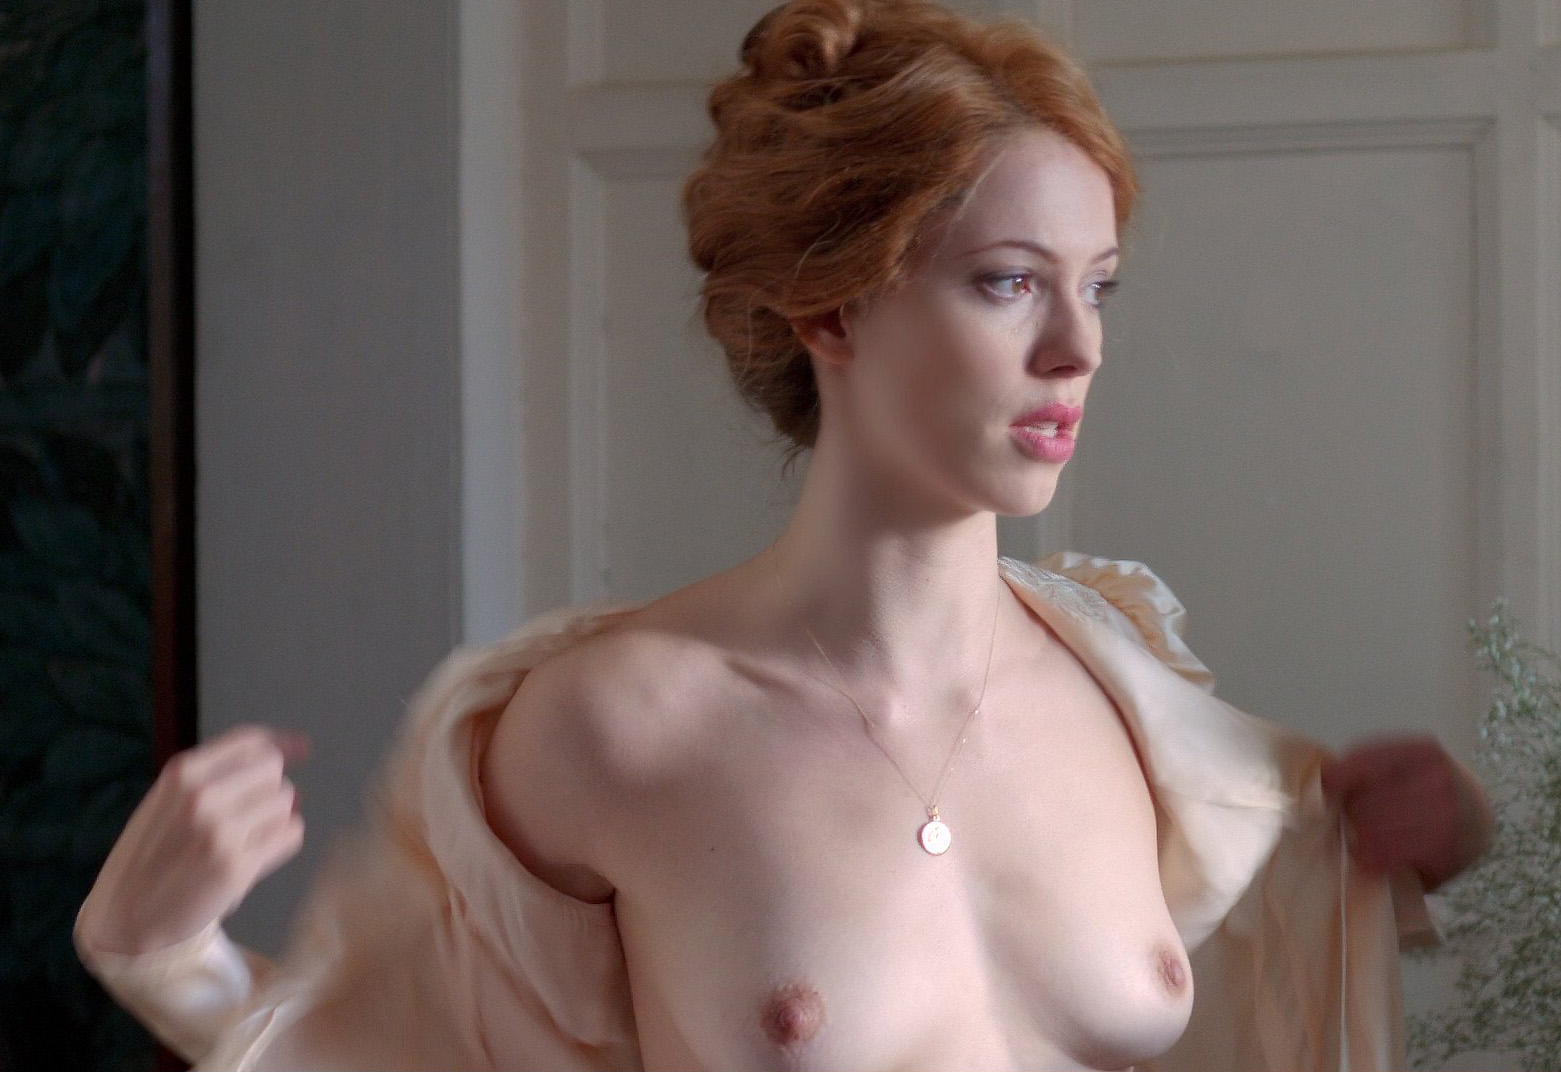 Naked pictures of rebecca hall — img 10